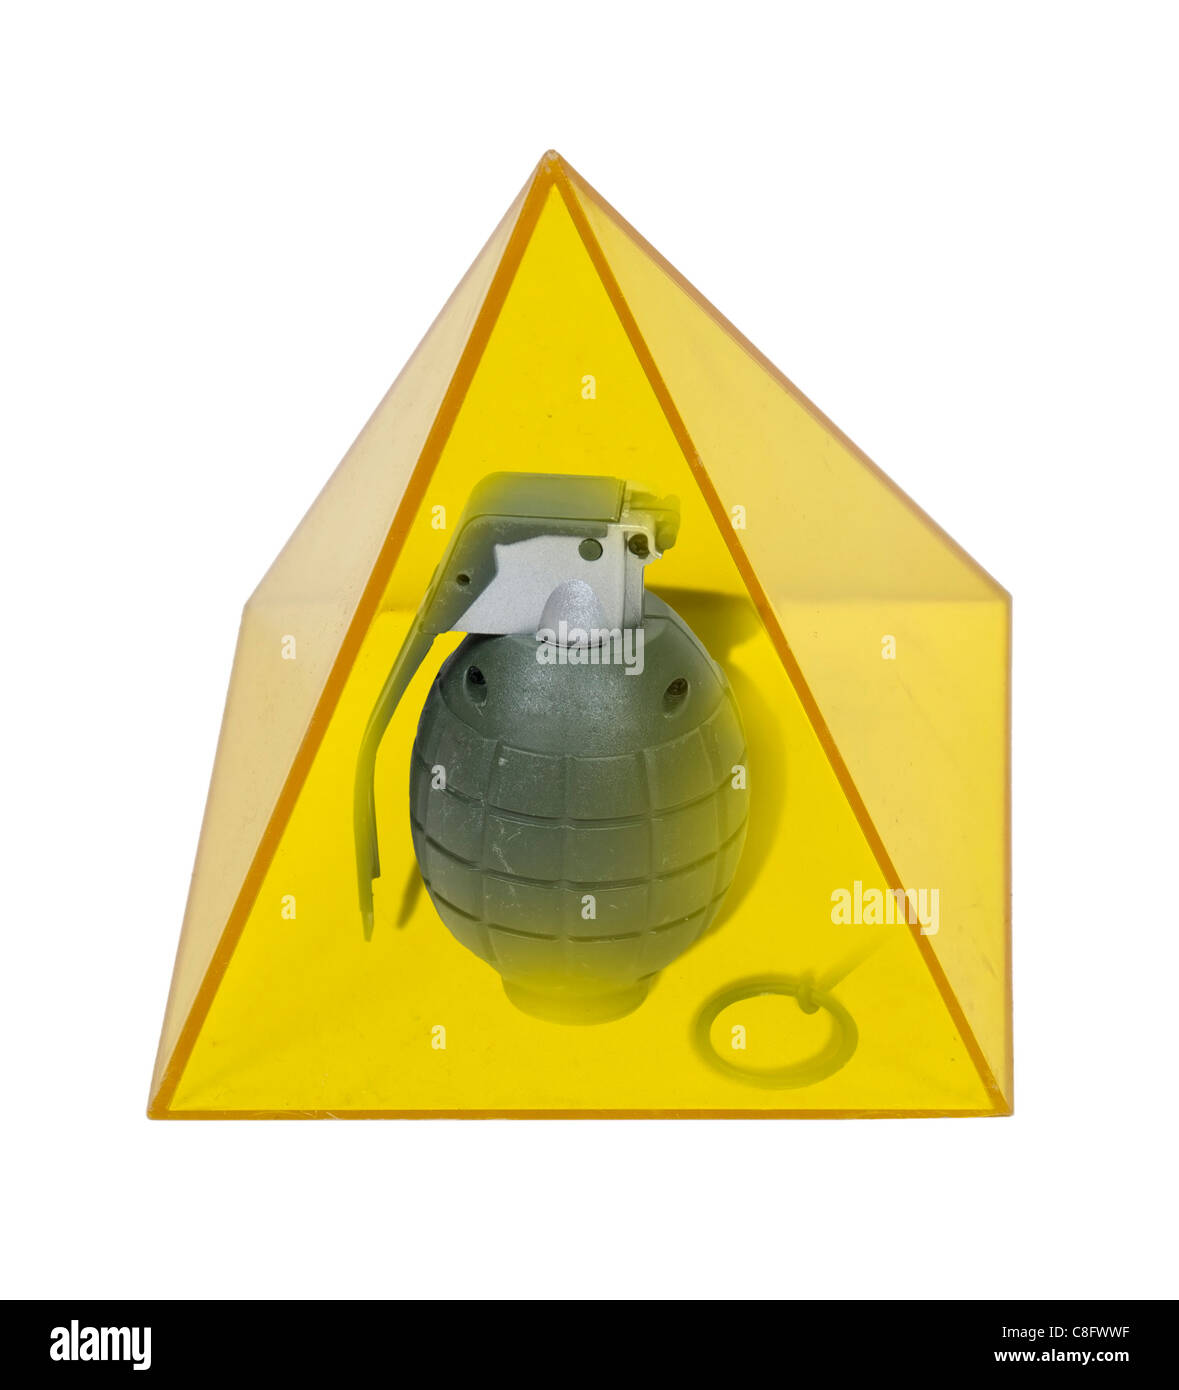 Egypt struggles shown by a grenade in a yellow pyramid - path included - Stock Image